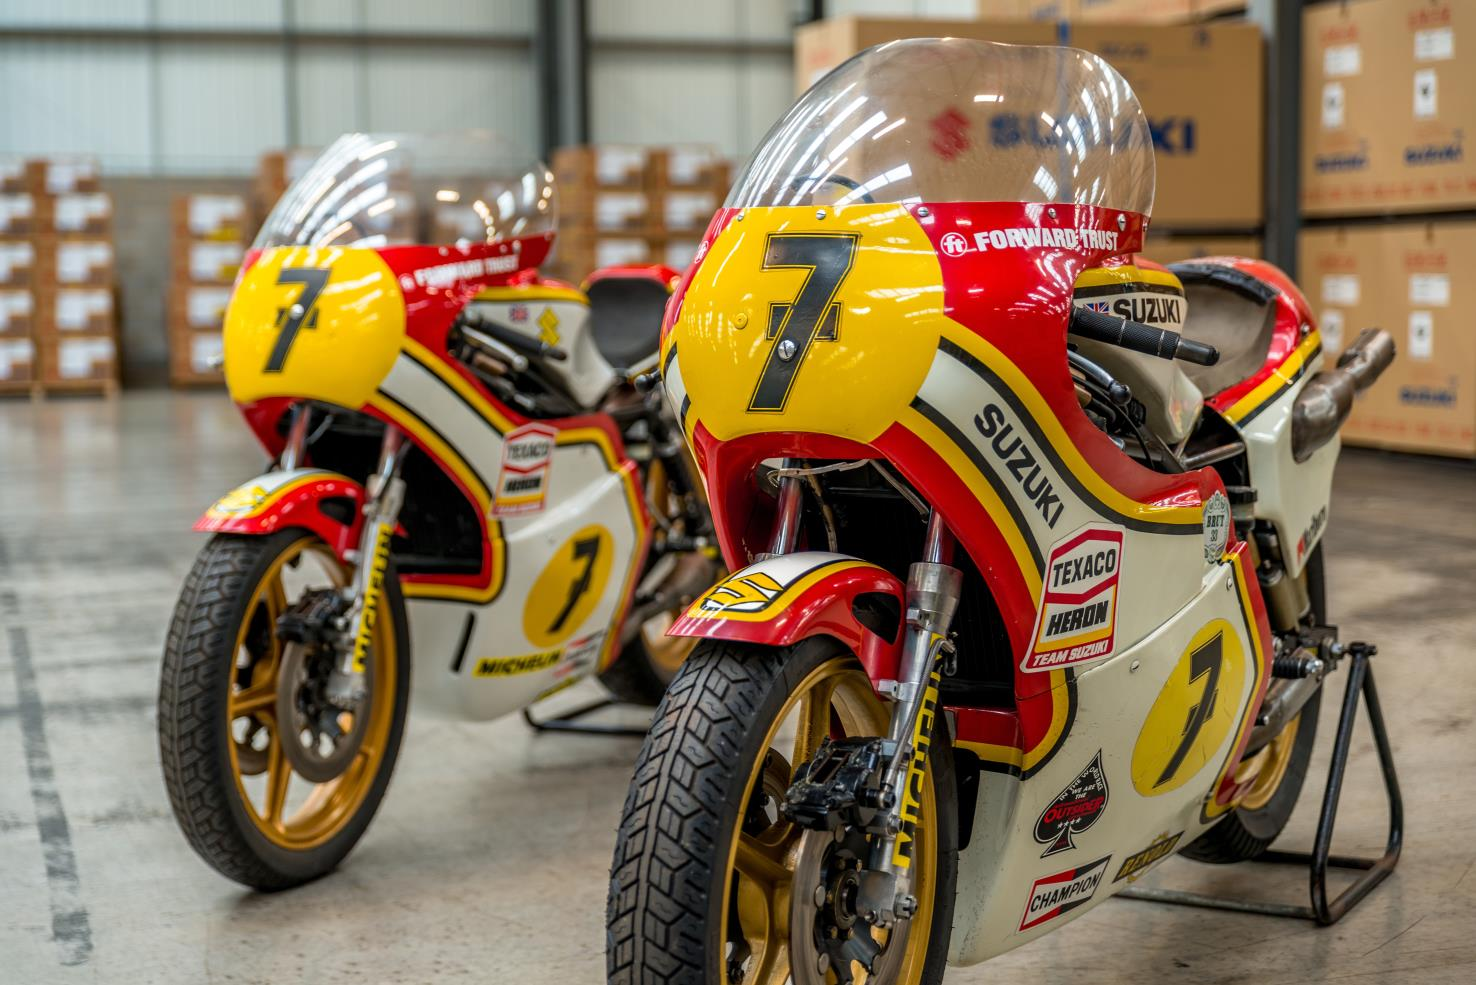 Barry Sheene's World Championship race bikes from 1976 and 1977